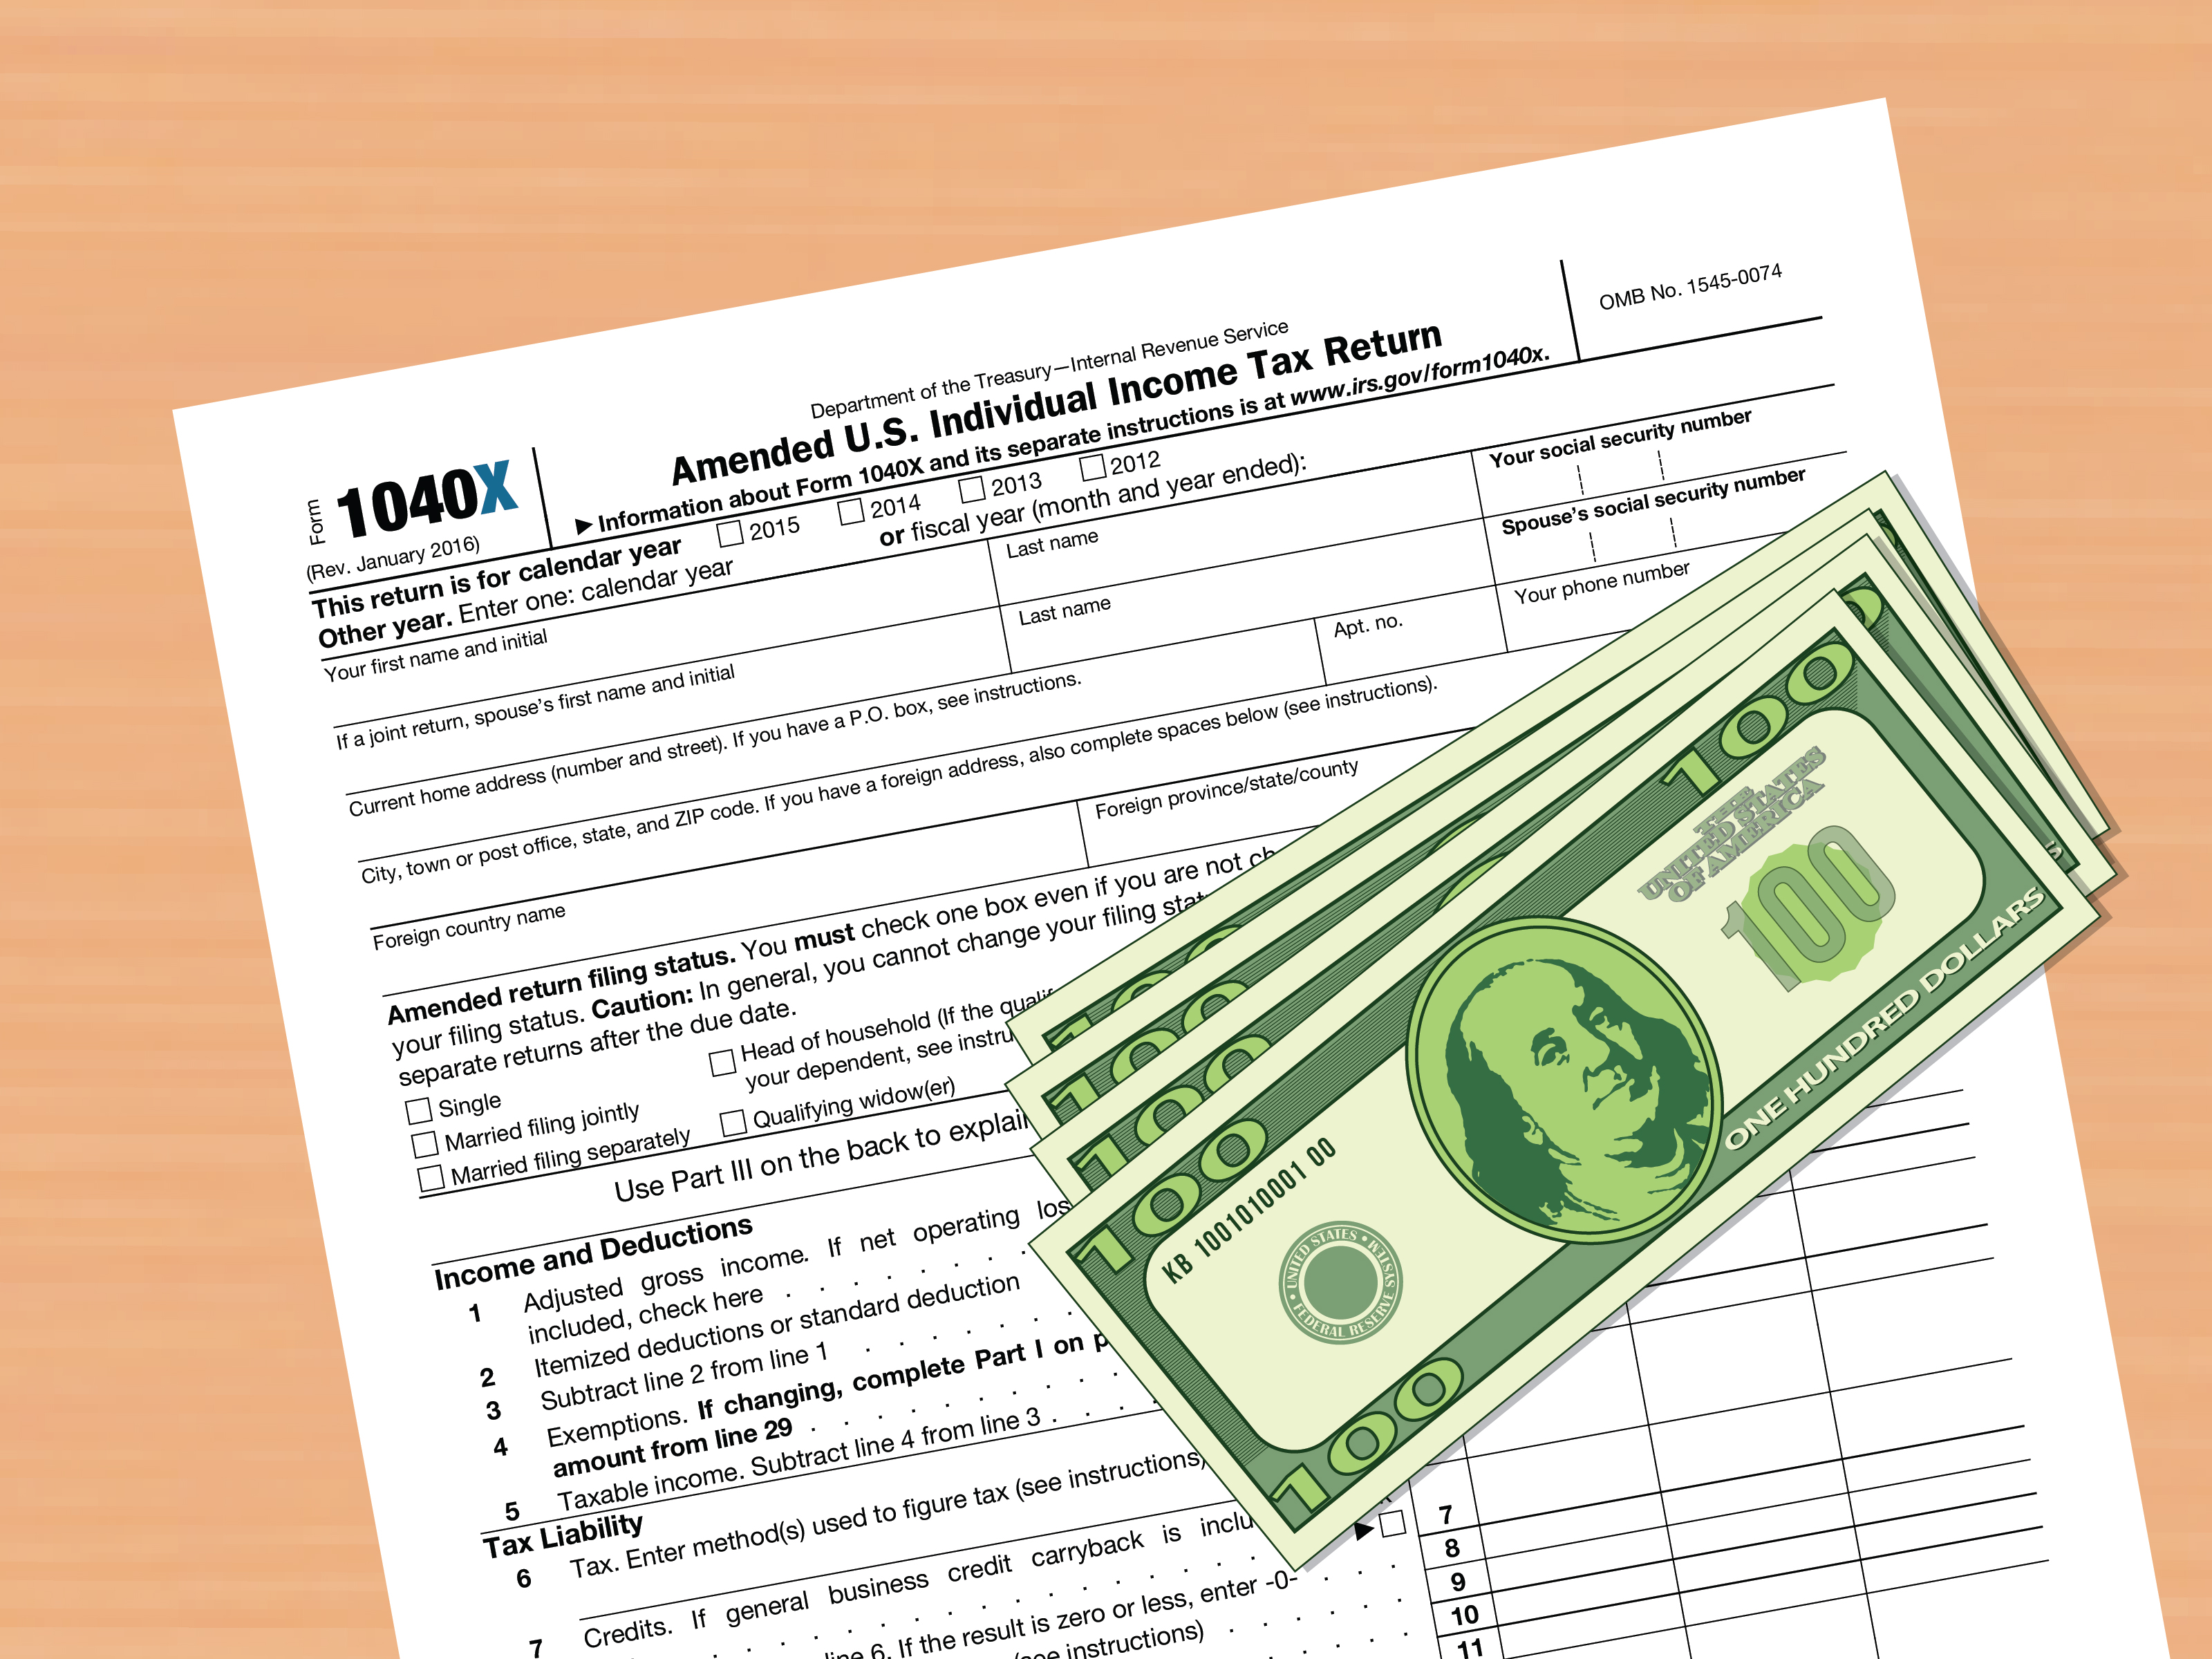 How To Amend A Federal Tax Return With Pictures